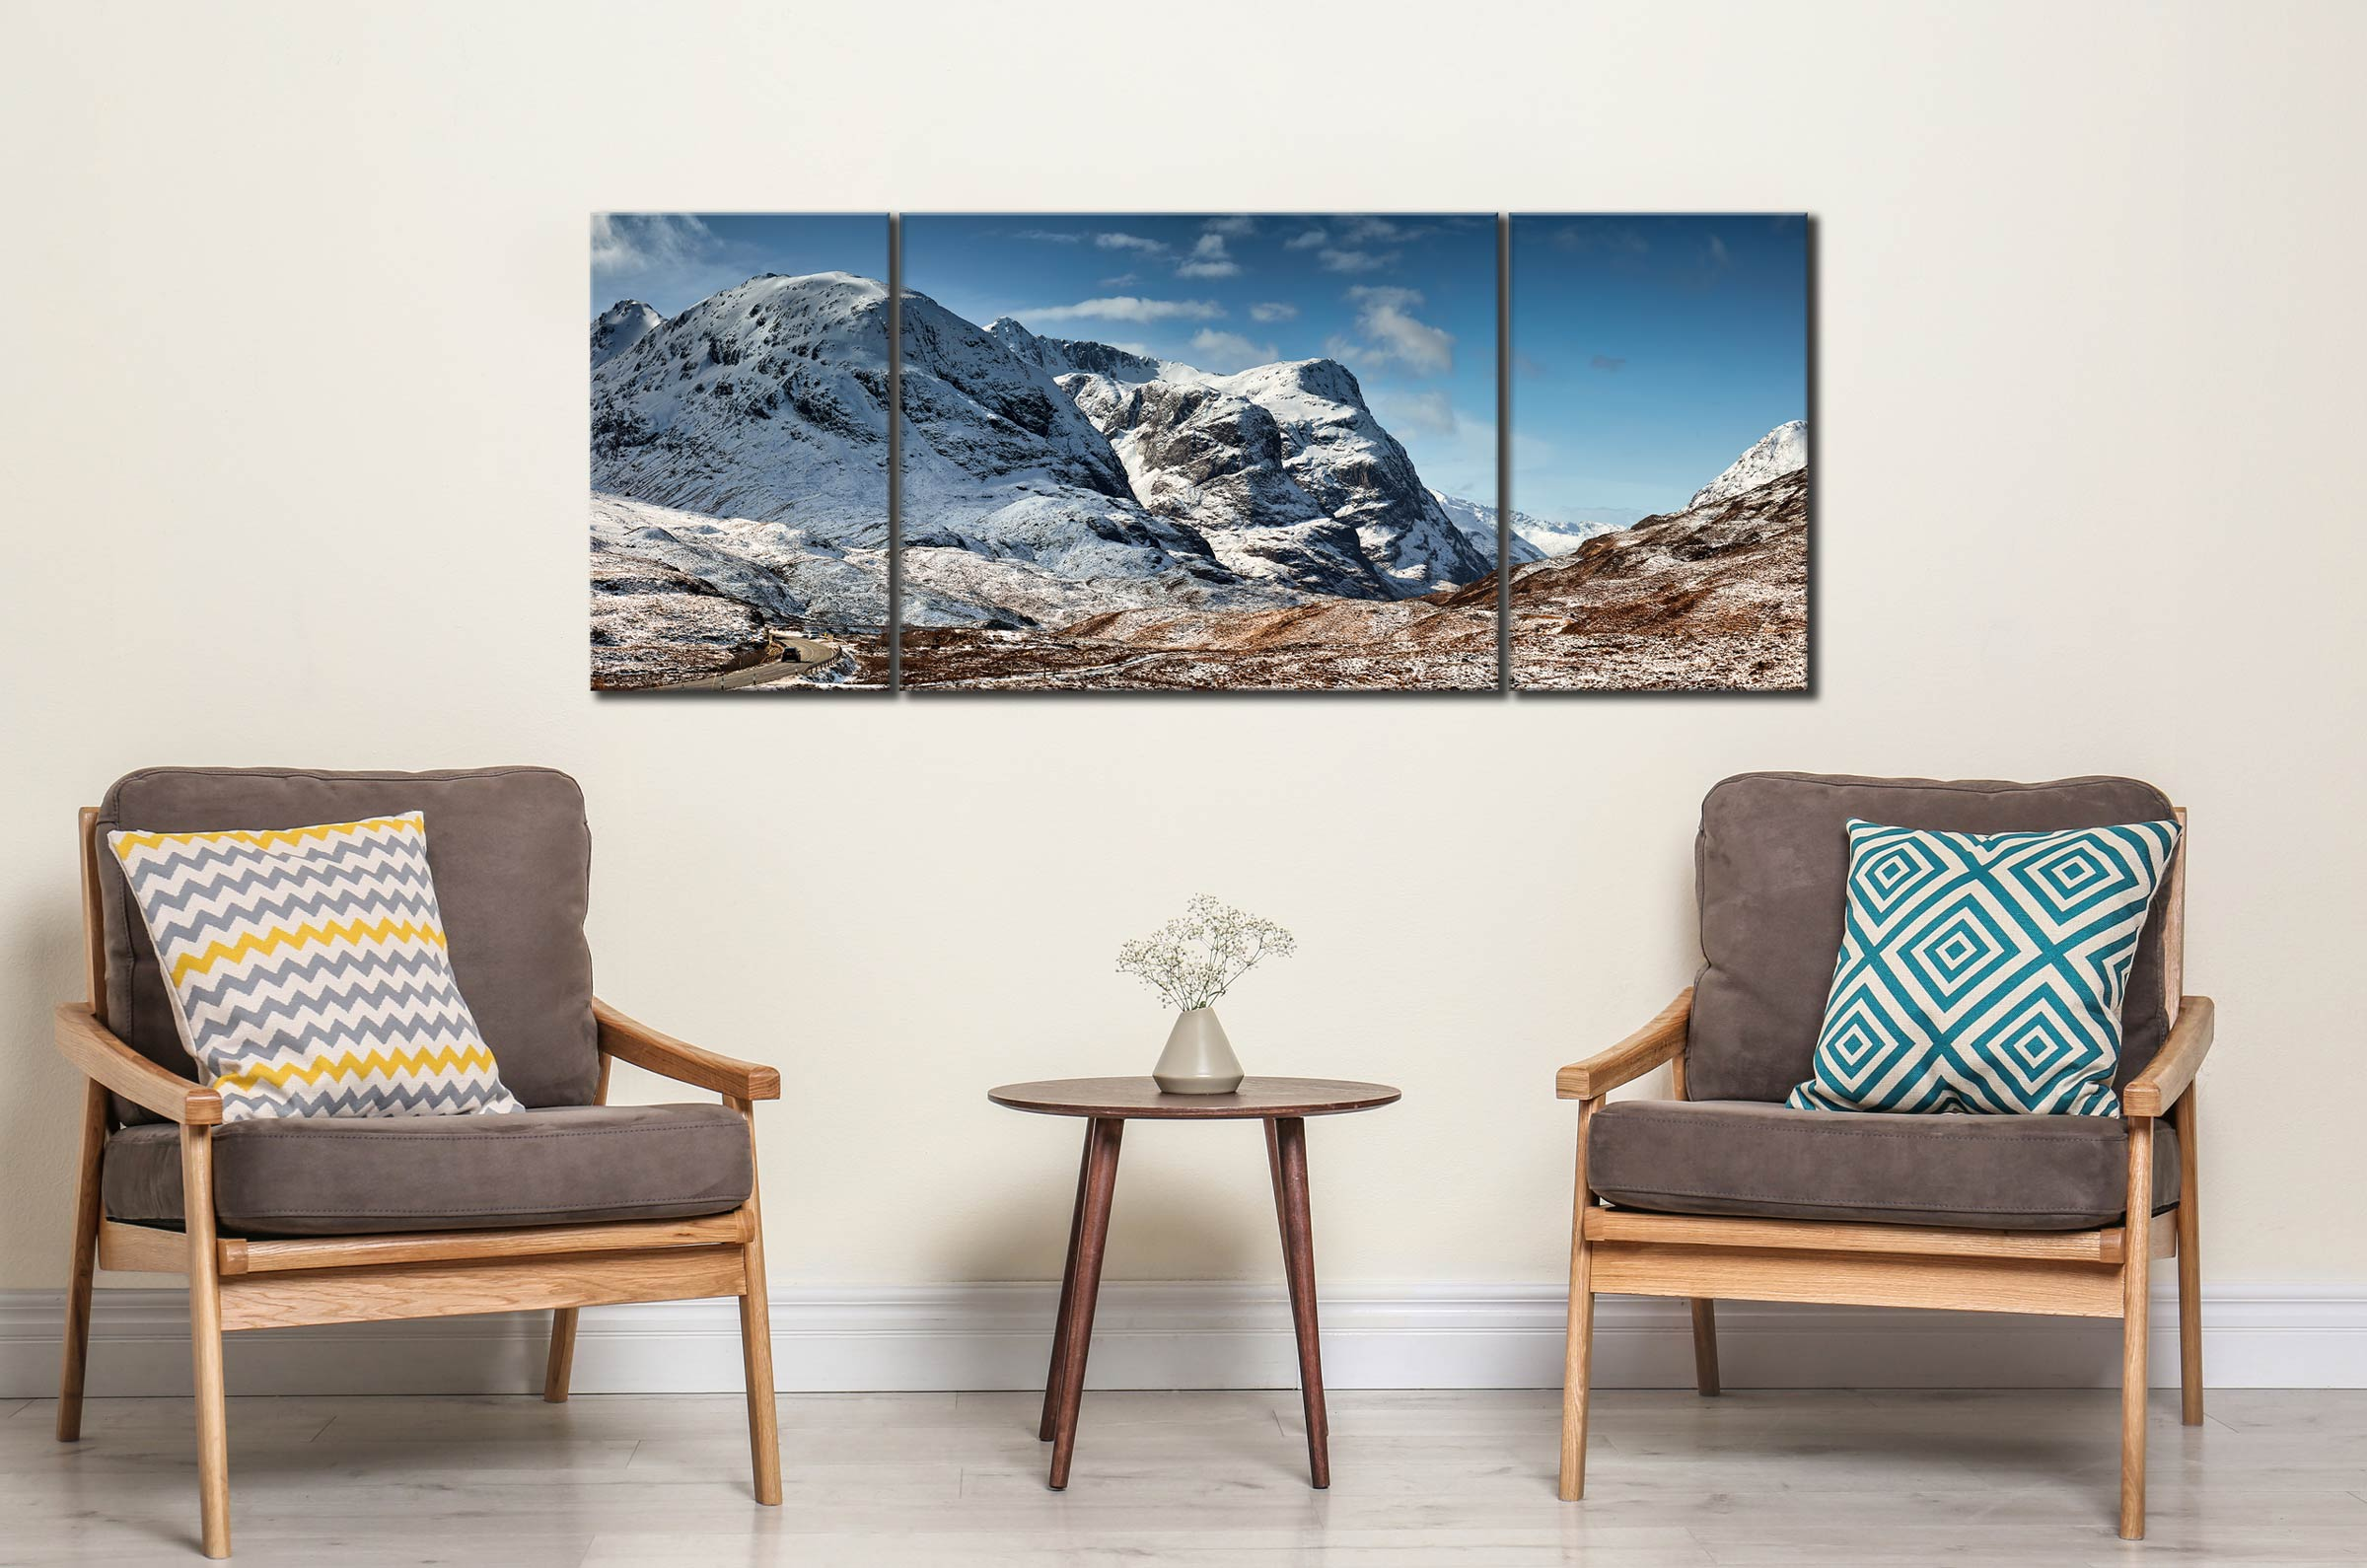 Glencoe in the Snow - 3 Panel Wide Mid Canvas on Wall